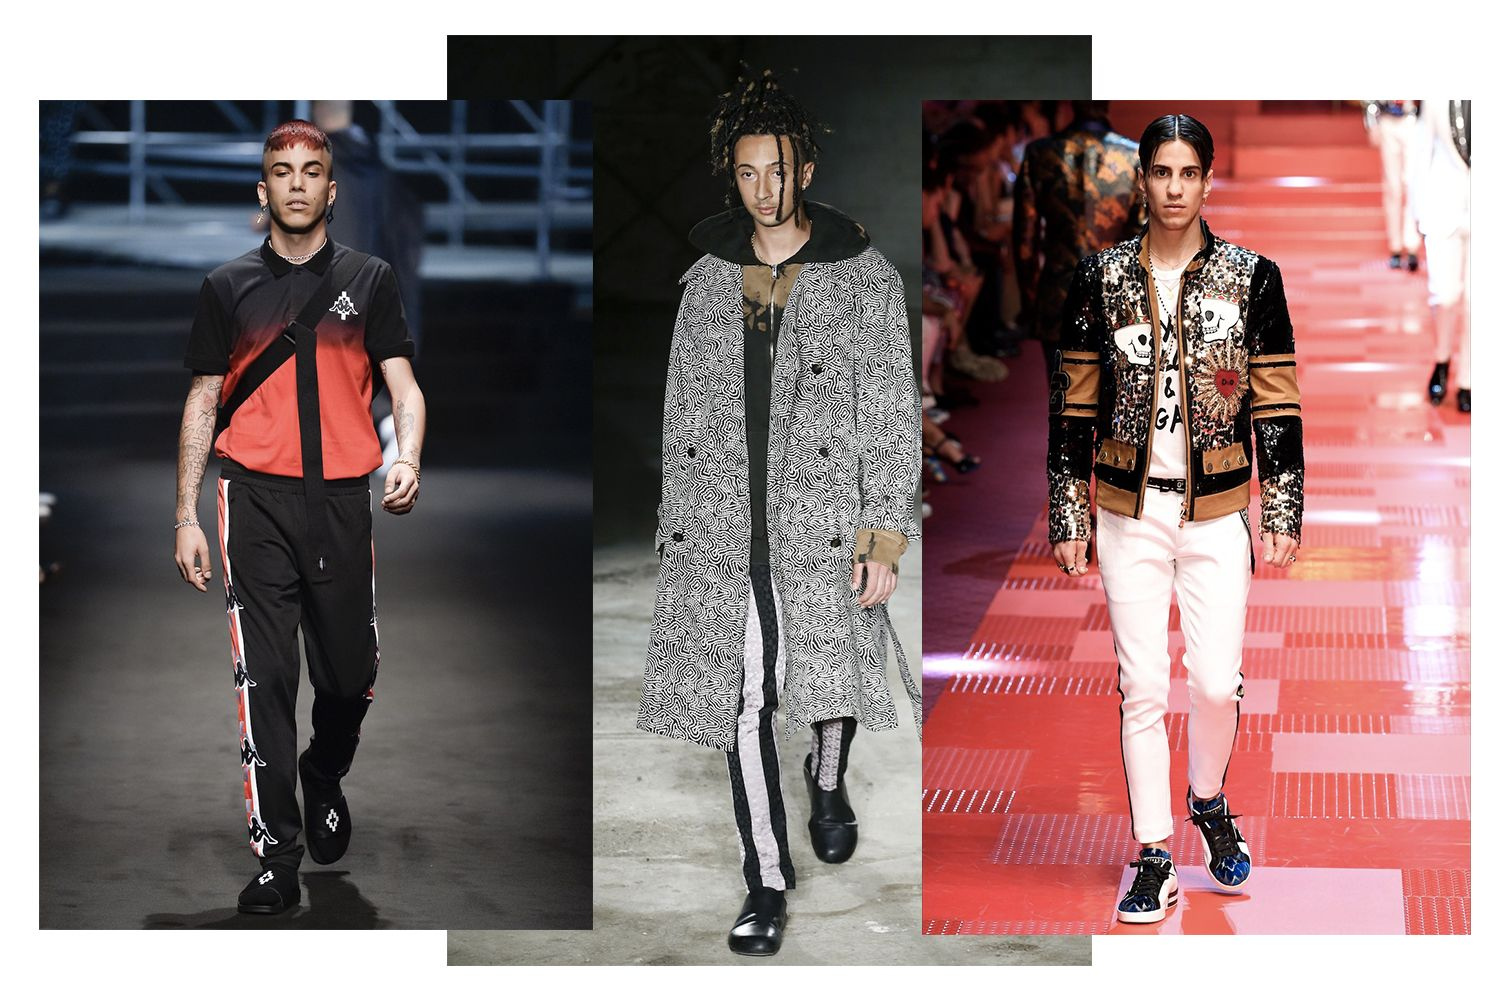 Italian Rappers Become Models At Milan Fashion Week